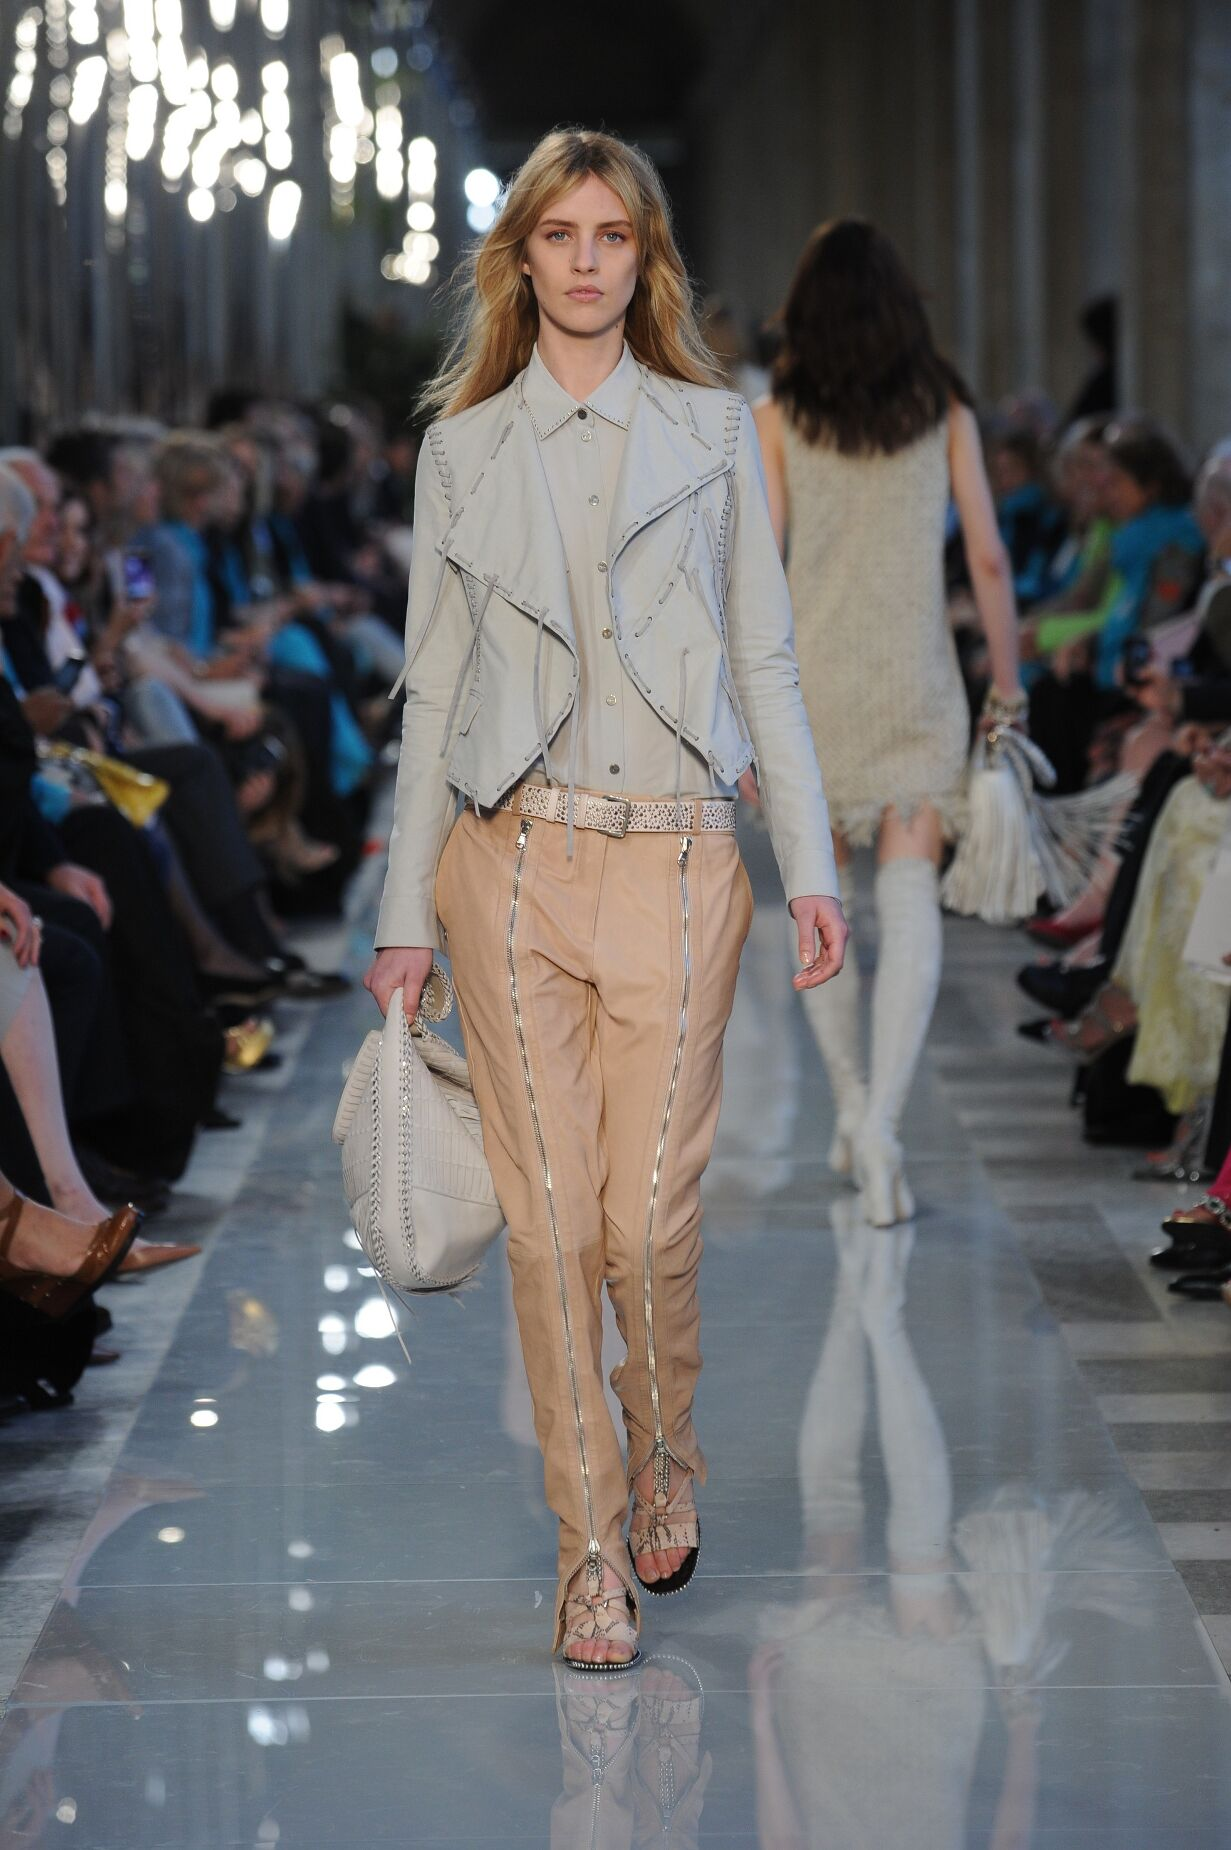 Salvatore Ferragamo SS 2013 Women's Resort Collection - Louvre Show